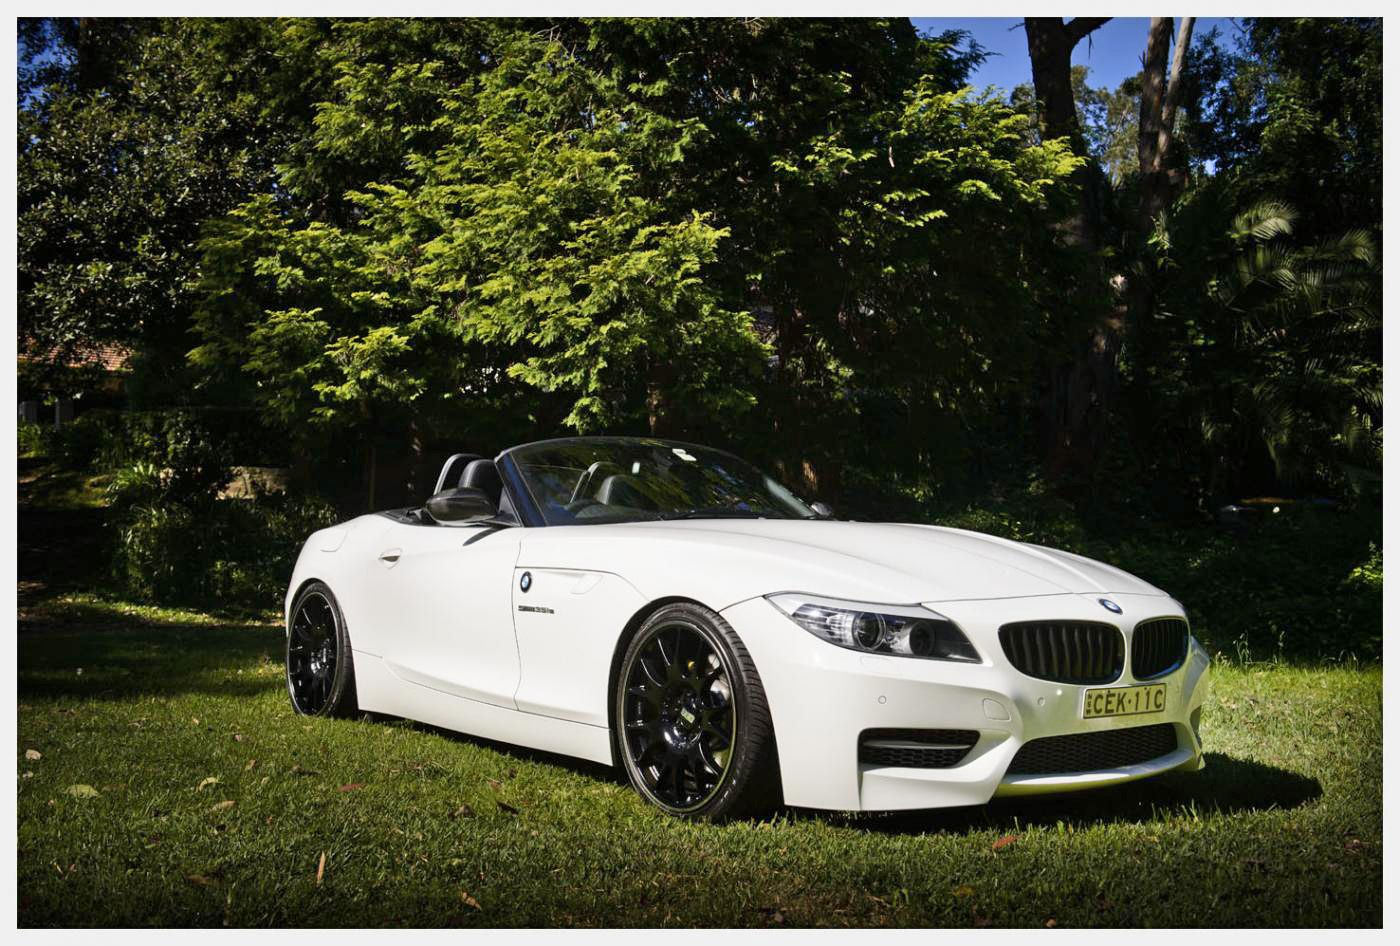 bmw z4 e89 bmw 4ever pinterest bmw and bmw z4. Black Bedroom Furniture Sets. Home Design Ideas